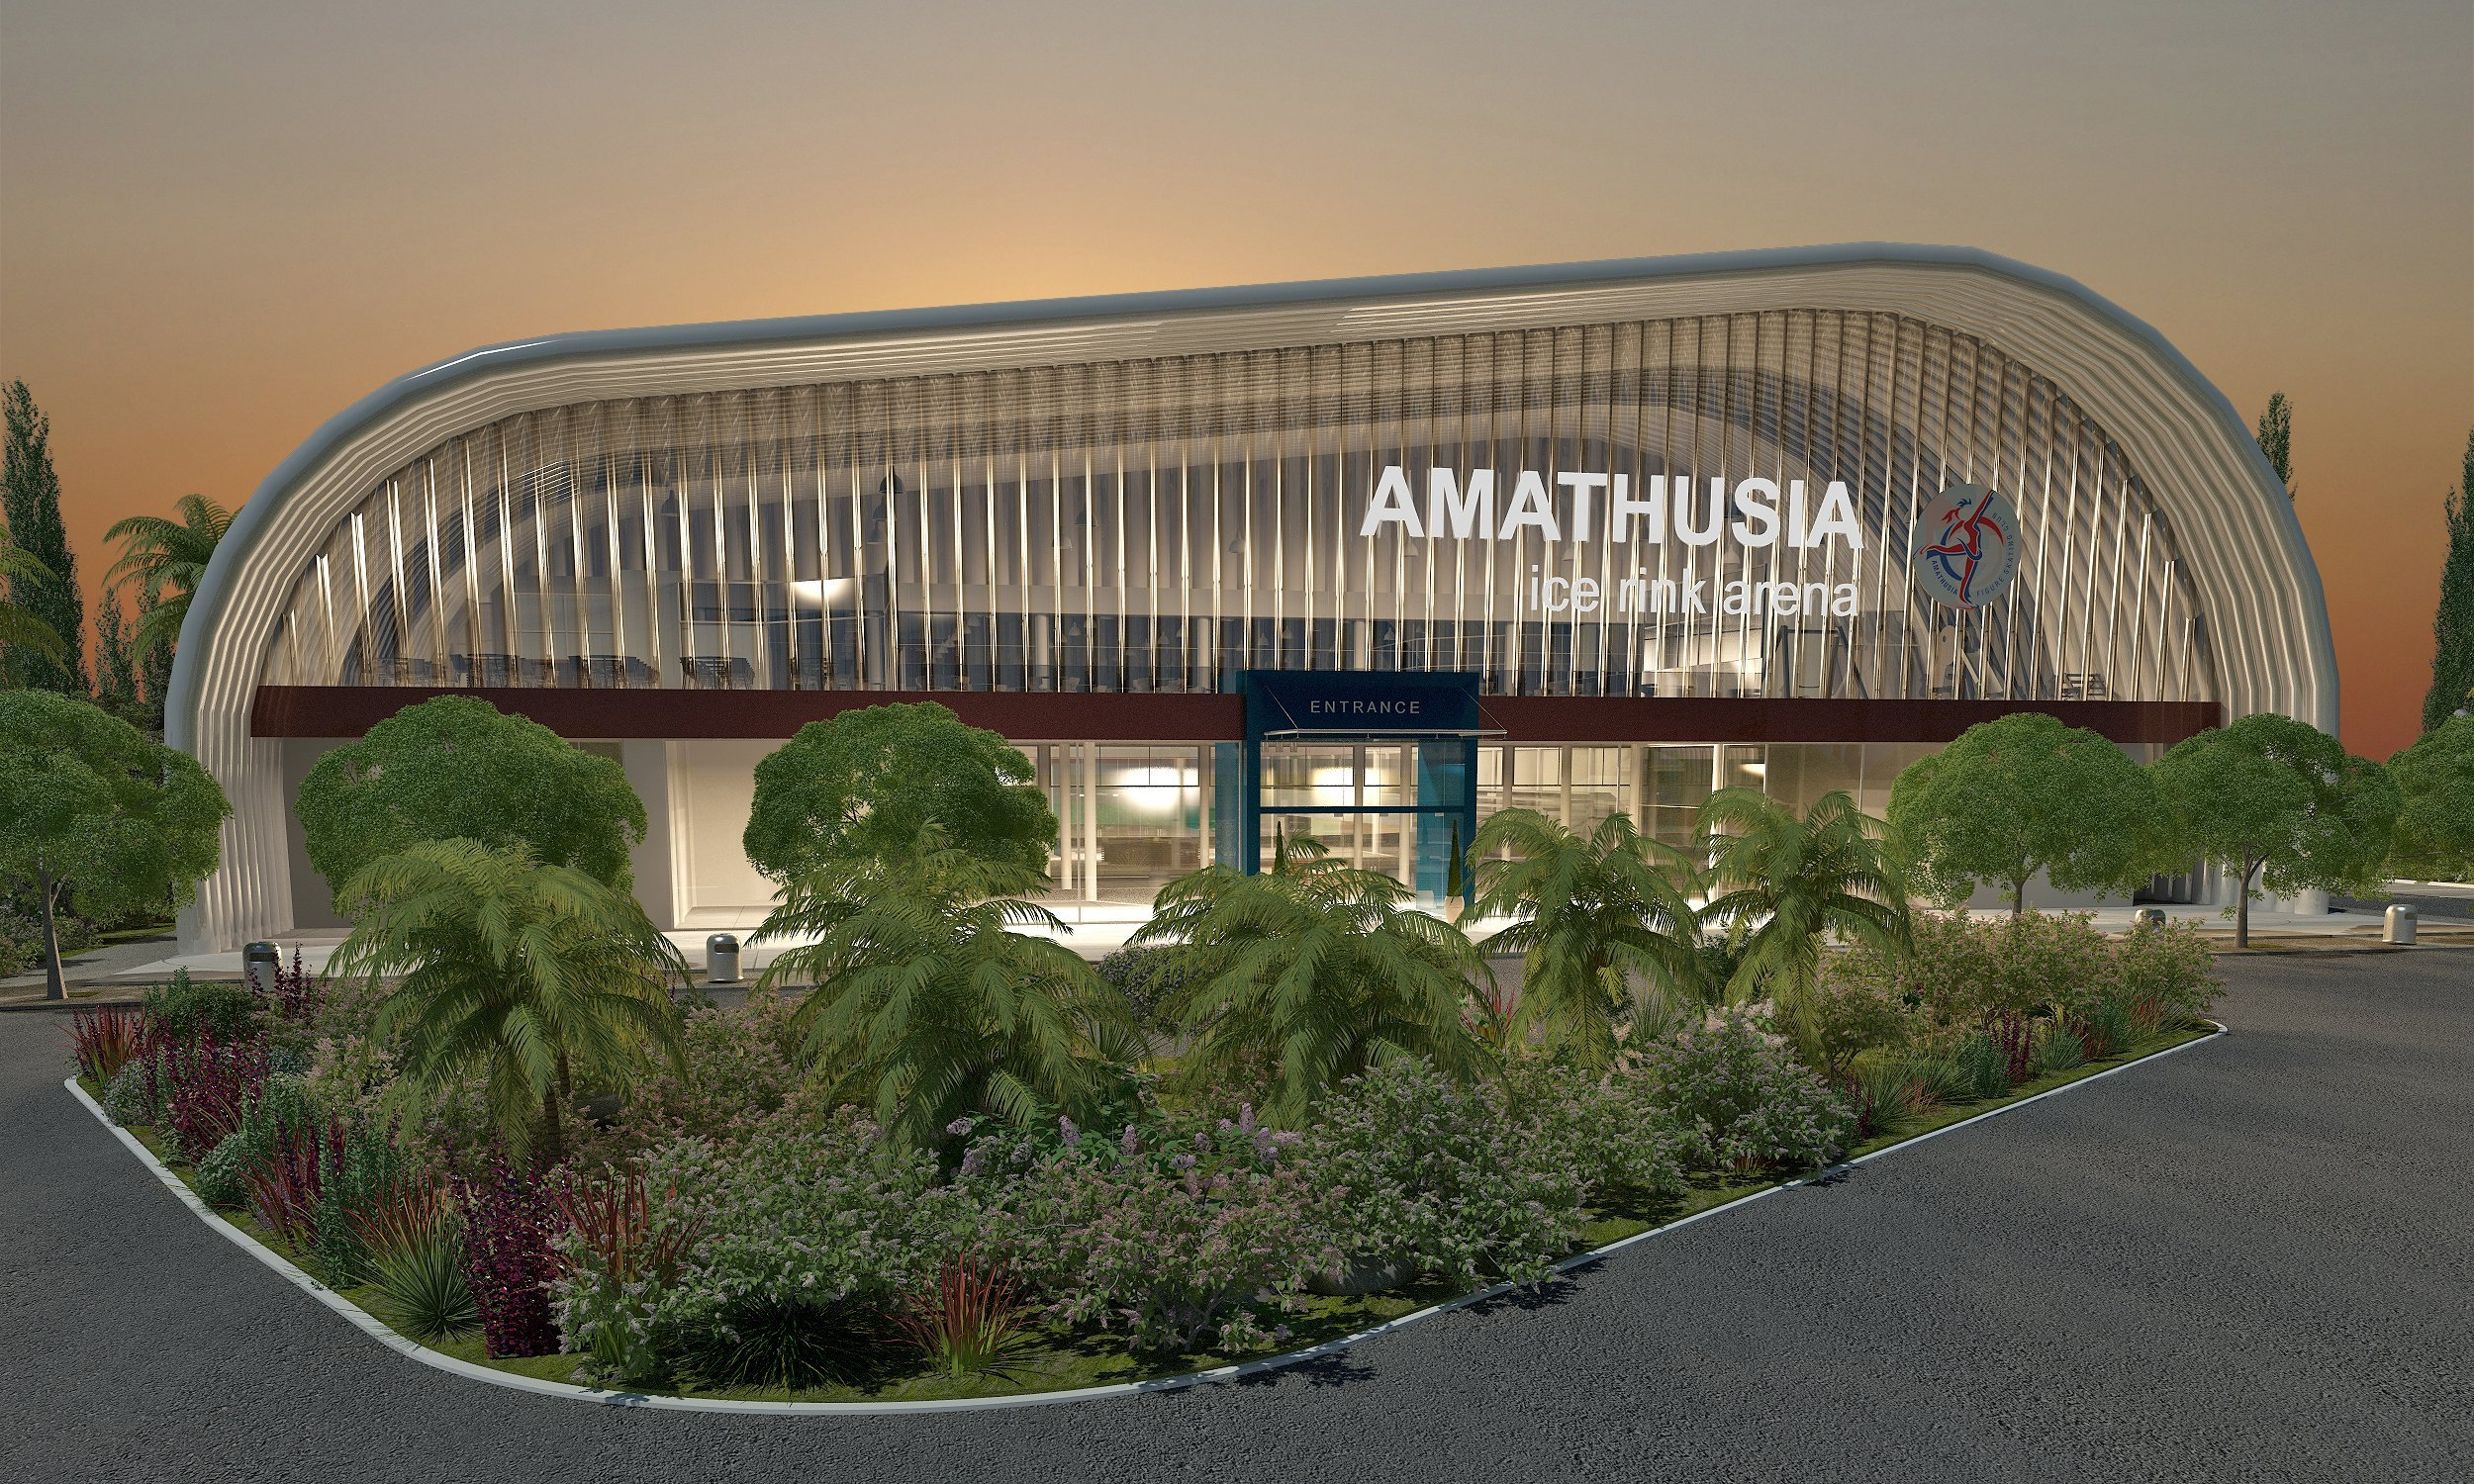 Amathusia Arena